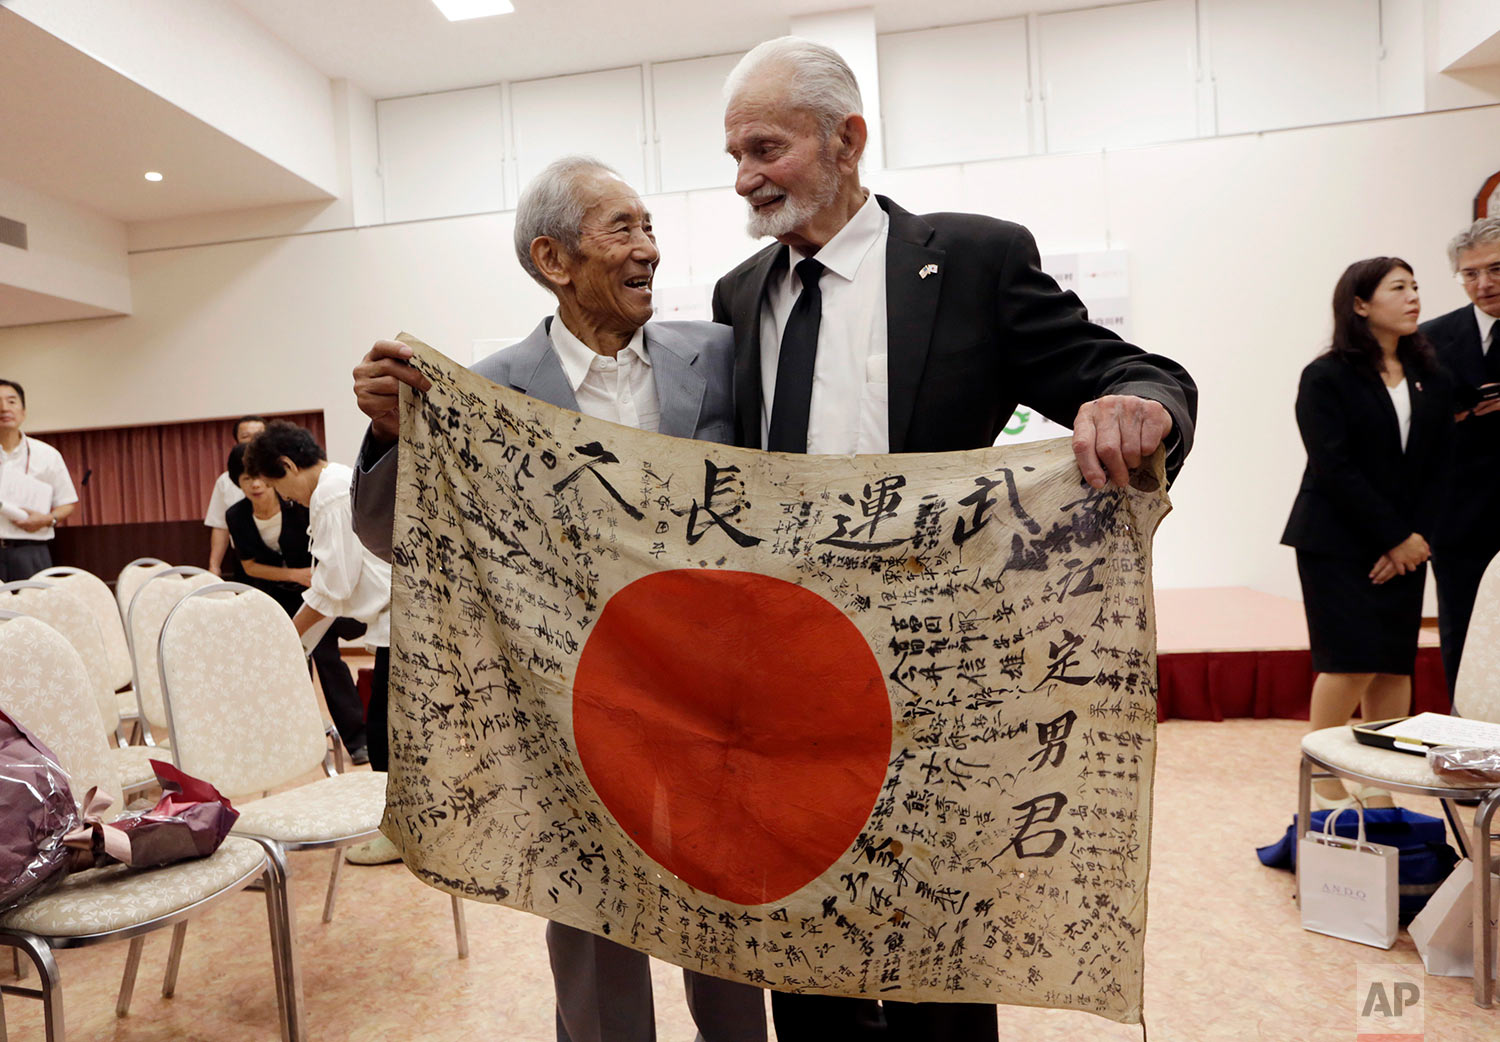 WWII veteran Marvin Strombo, right, and Tatsuya Yasue, 89-year-old farmer, hold a Japanese flag with autographed messages which was owned by his brother Sadao Yasue, who was killed in the Pacific during World Work II, during a ceremony in Higashishirakawa, in central Japan's Gifu prefecture Tuesday, Aug. 15, 2017. Strombo has returned to the fallen soldier's family the calligraphy-covered flag he took from the man's body 73 years ago. (AP Photo/Eugene Hoshiko)